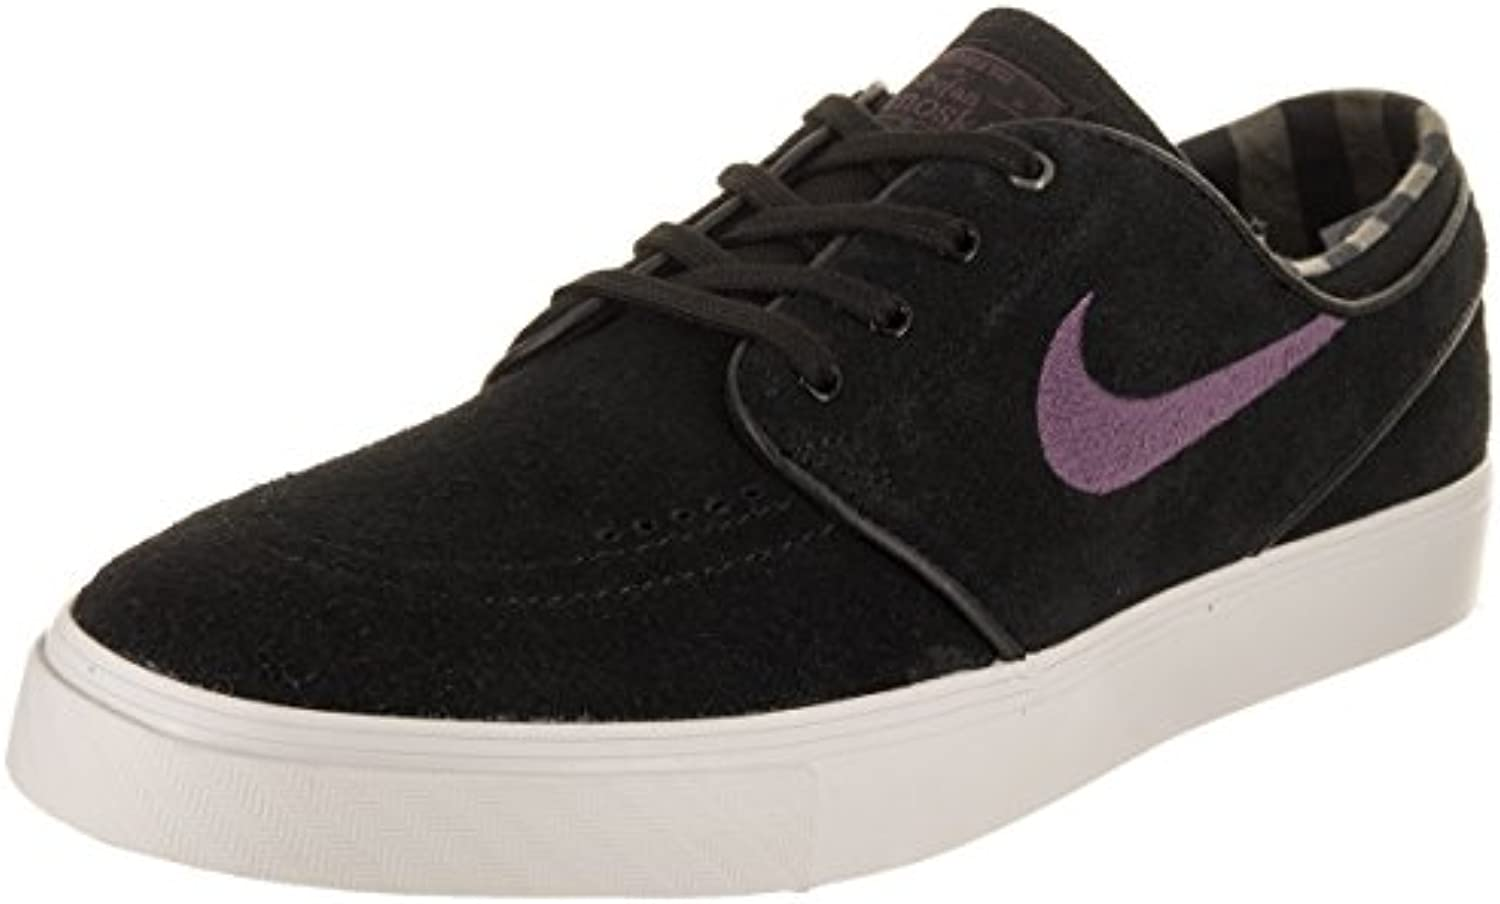 monsieur / patiner madame nike zoom stefan janoski hommes patiner / chaussure excellent craft impeccable ar35000 antidérapant a76bcc